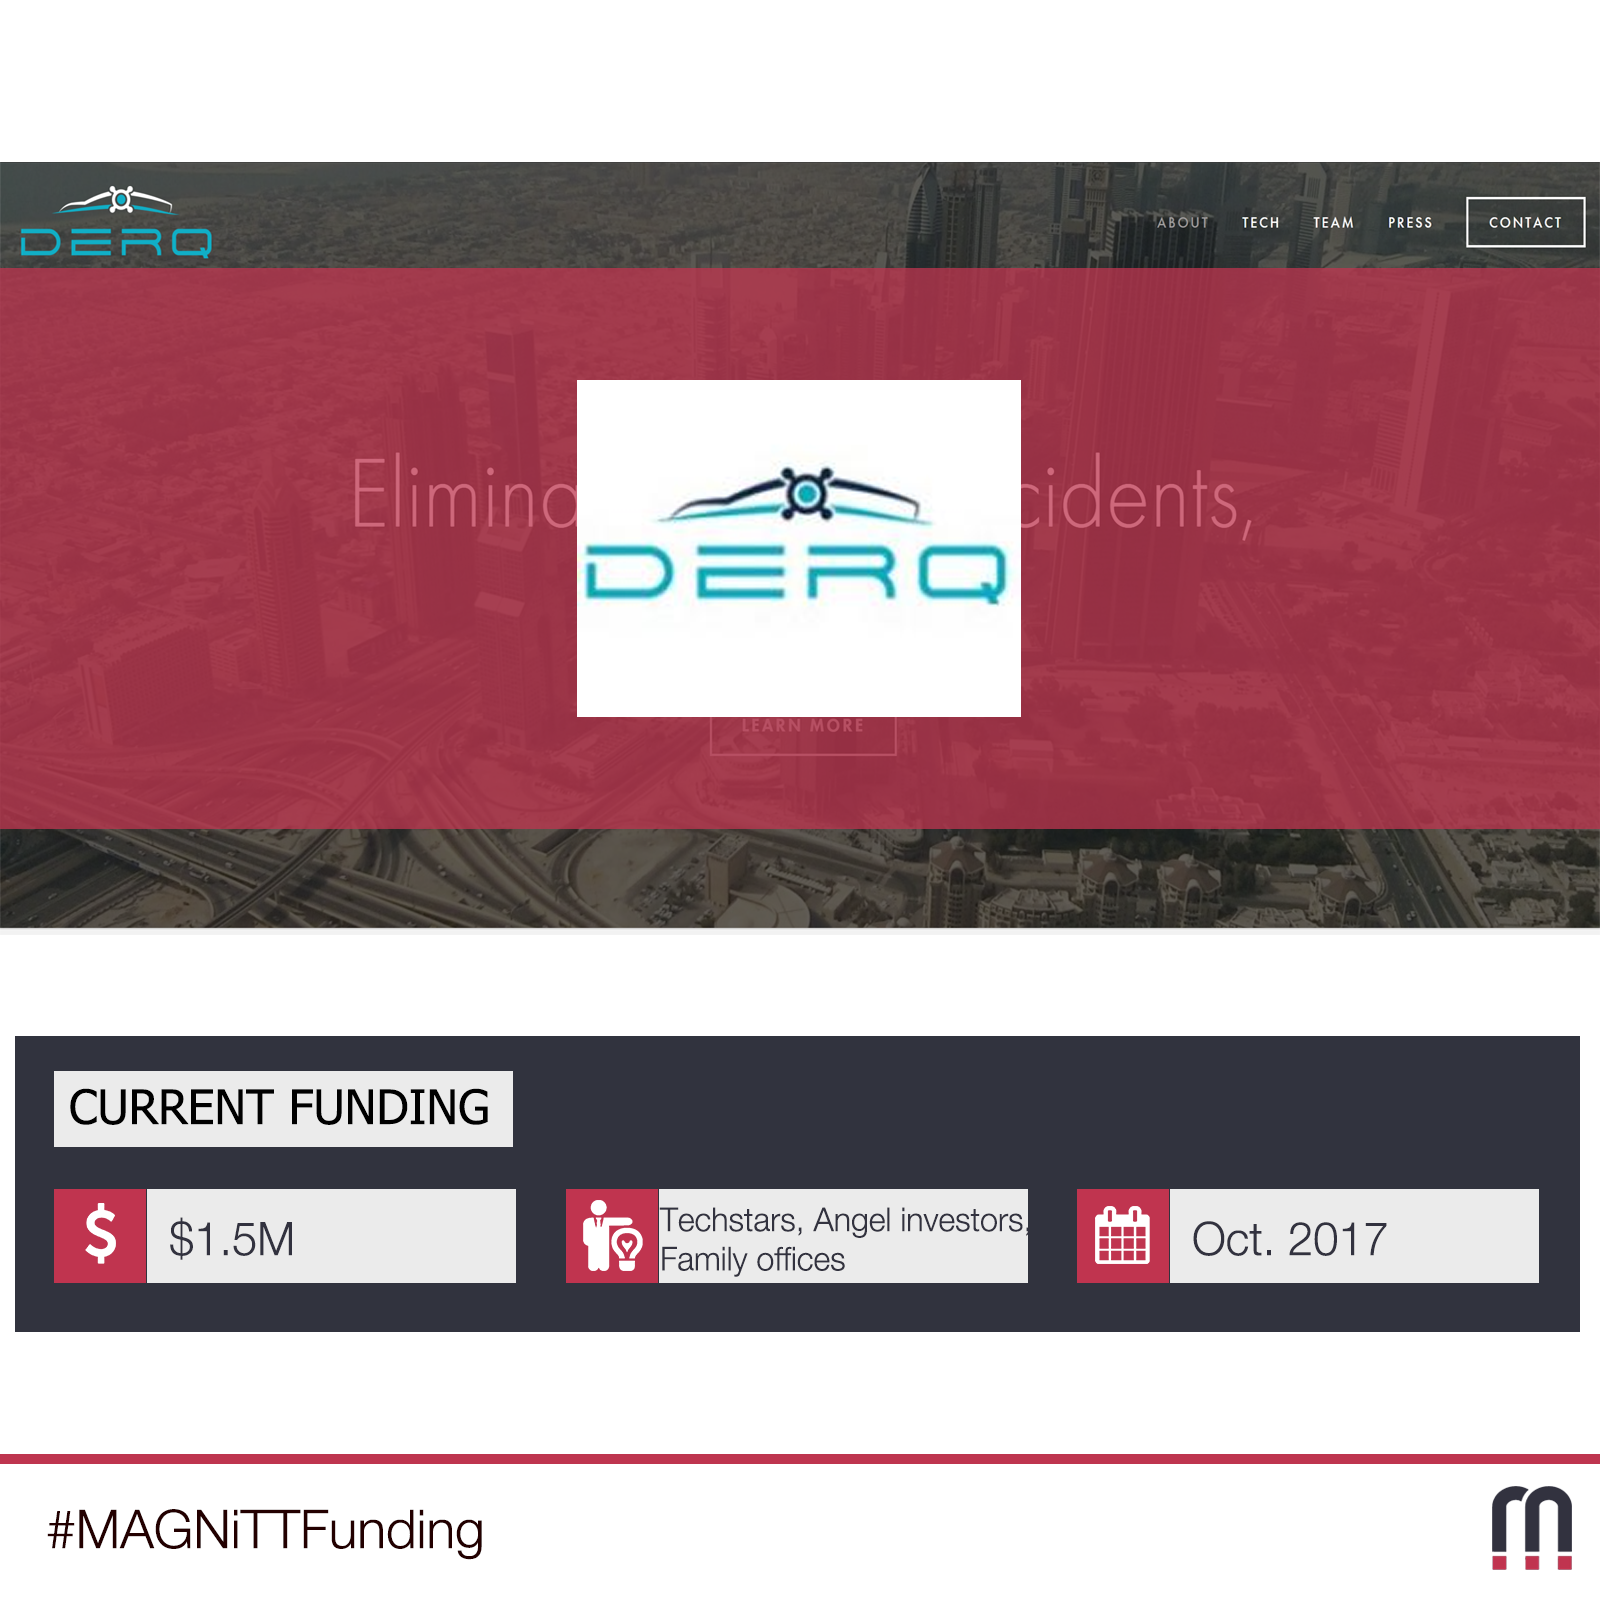 DERQ SECURES $1.5M IN SEED FUNDING TO ELIMINATE ROAD ACCIDENTS AND SAVE LIVES